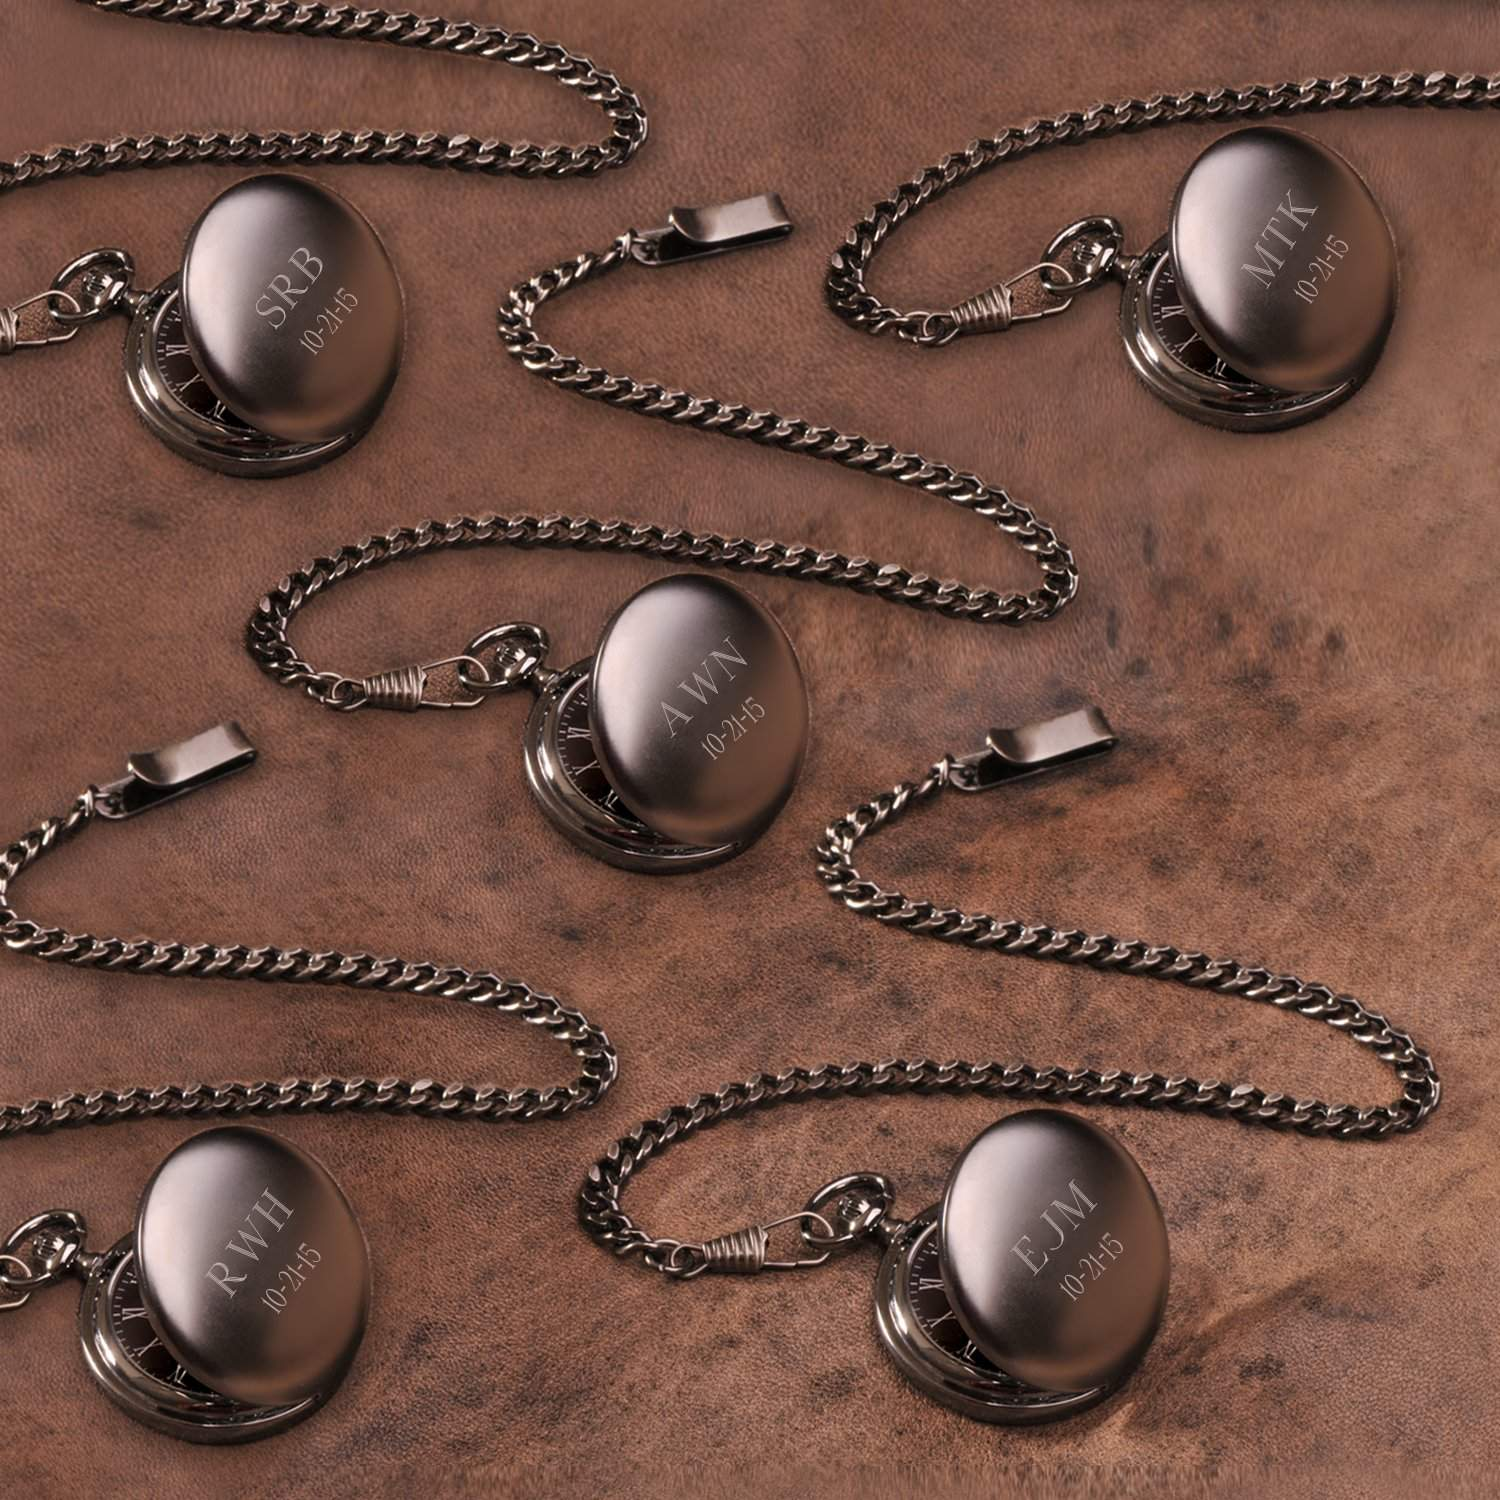 Set of 5 Personalized Gunmetal Pocket Watches